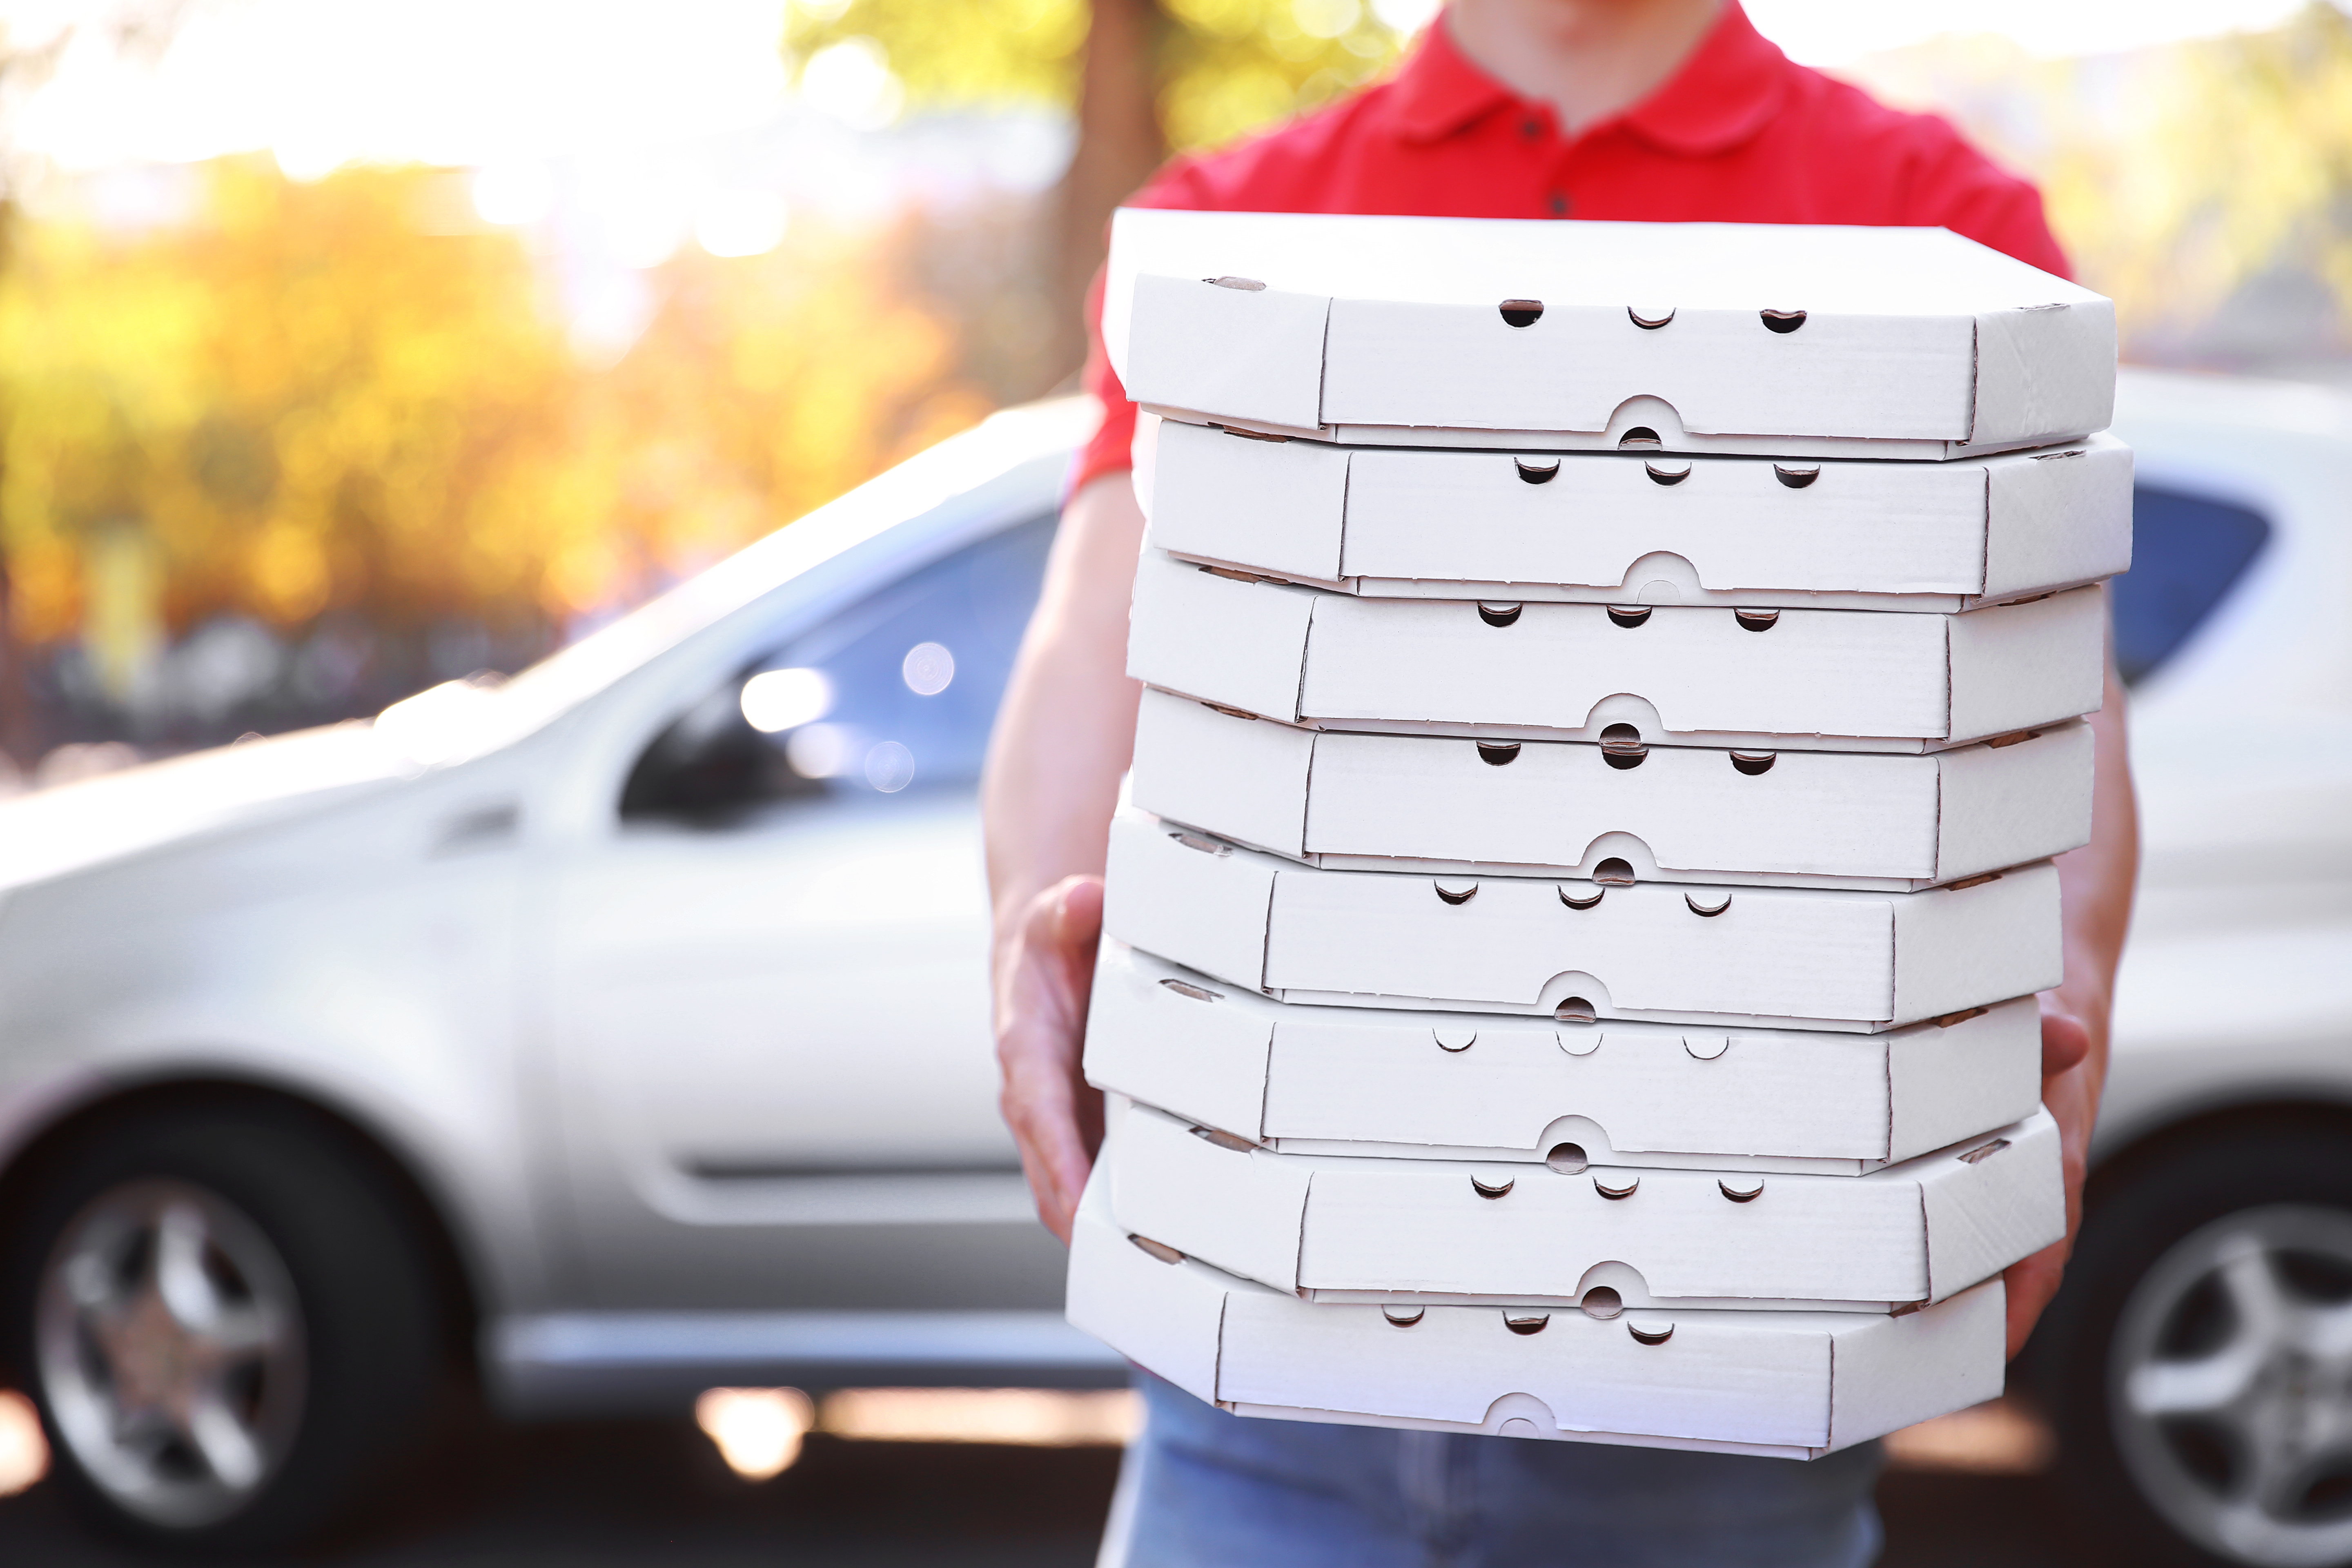 Using Your Vehicle for Deliveries? Check Your Auto Insurance First